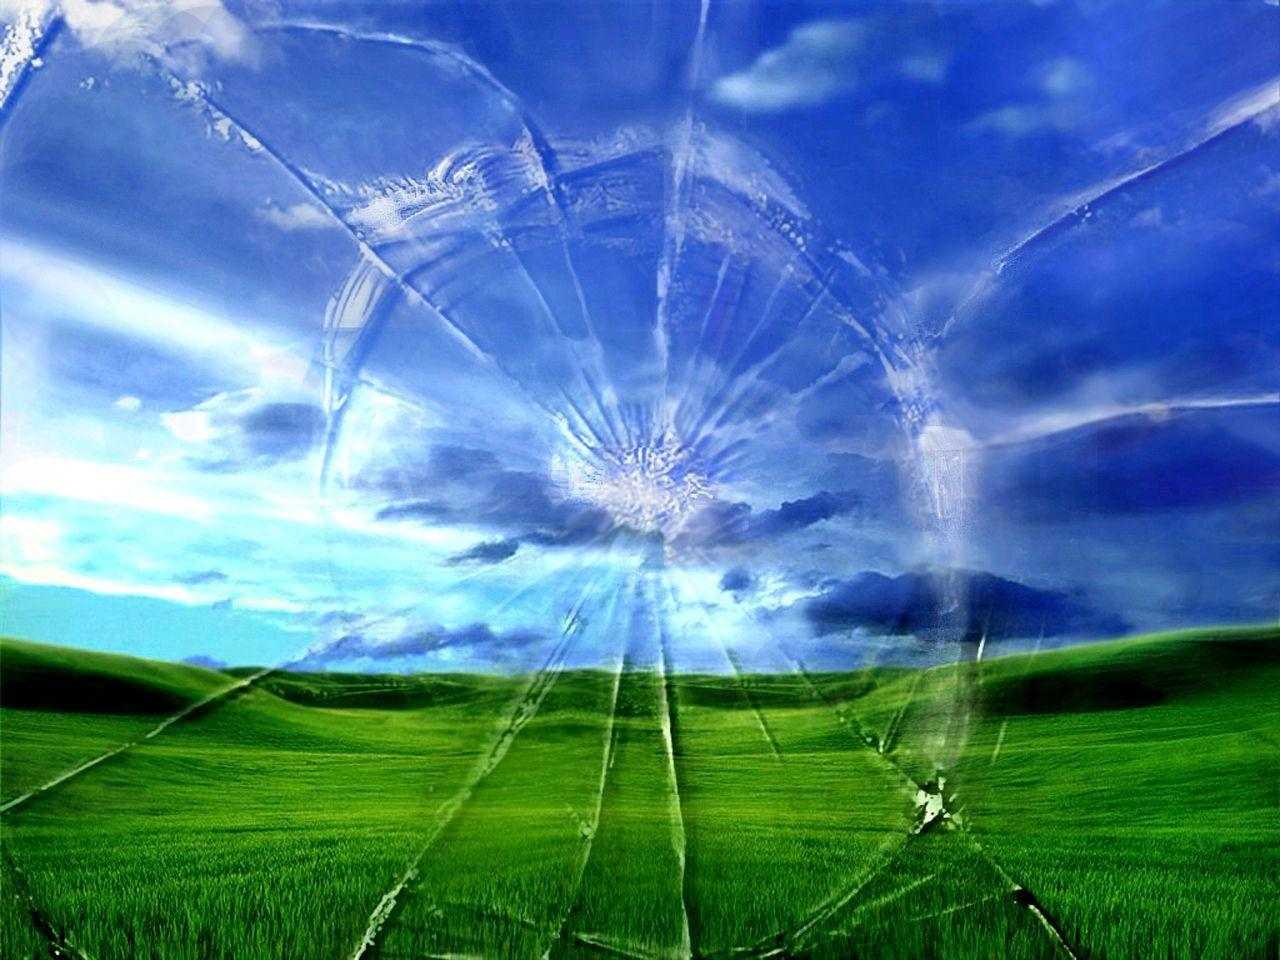 The Avegners Wallpaper Quotes Cracked Screen Background Free Pixelstalk Net